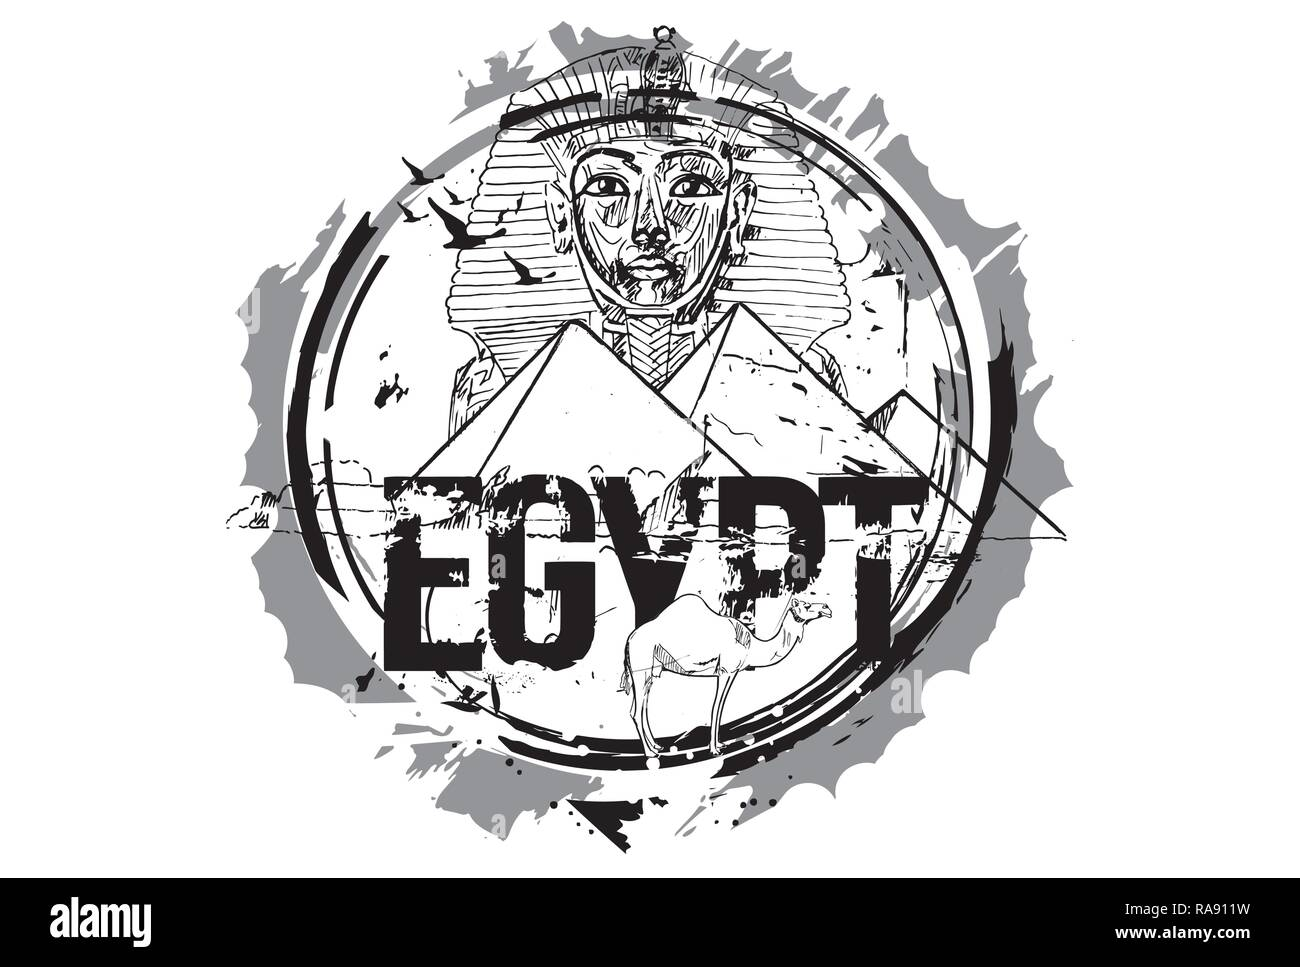 Egypt, Giza, Tutankhamun Egyptian Pharaoh king mask And The Pyramid Of Khafre With Camel - Stock Vector